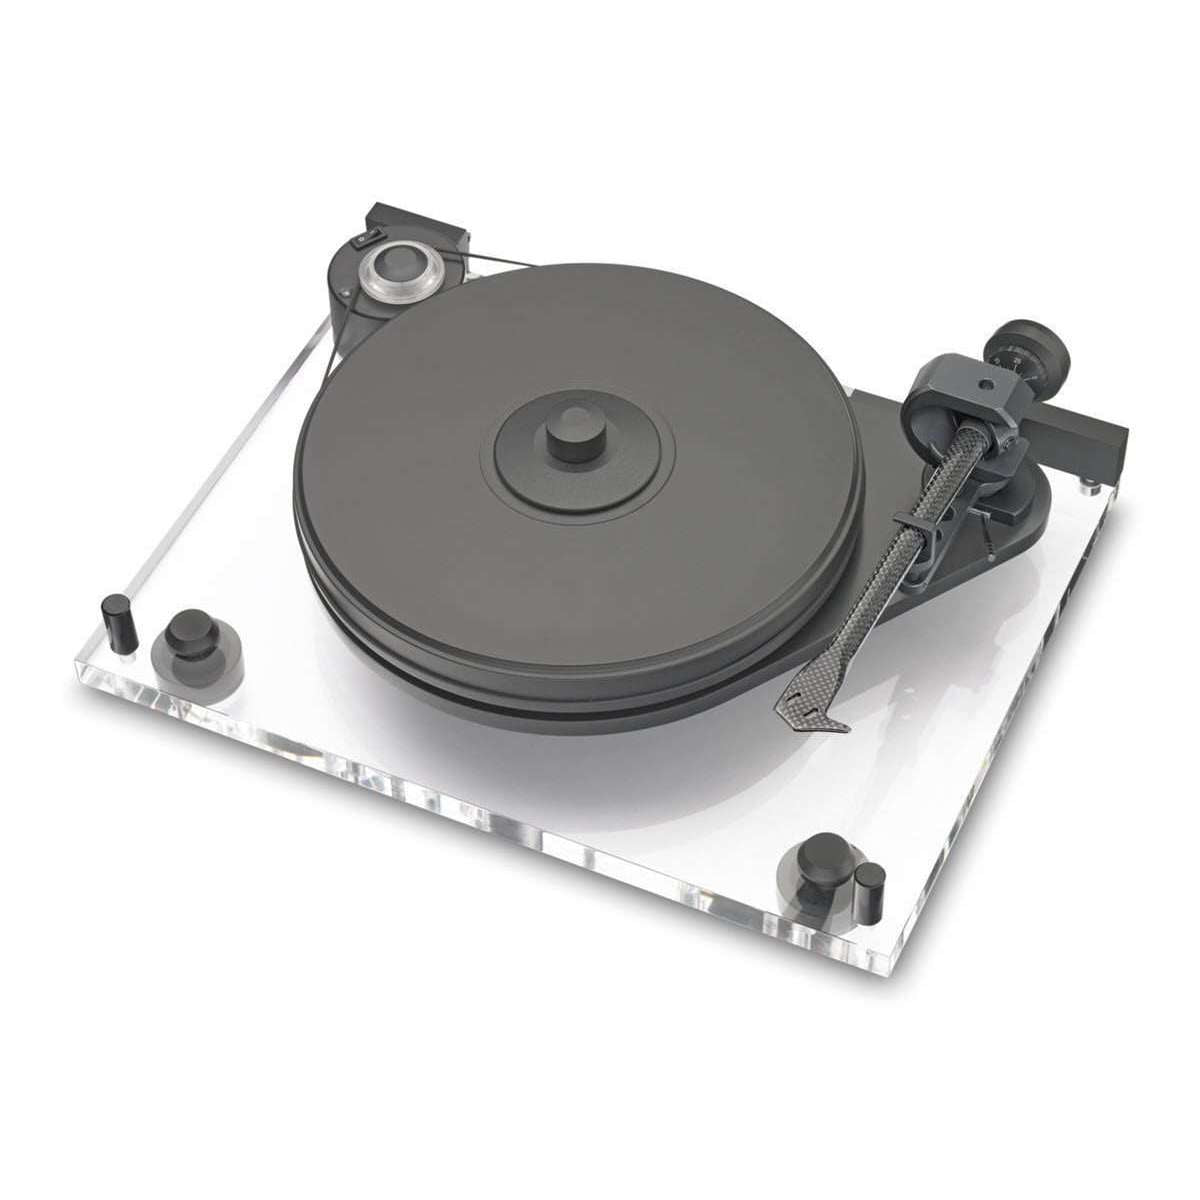 Pro-Ject 6 Perspex Turntable - Default Title - Call SpatialOnline 0345 557 7334